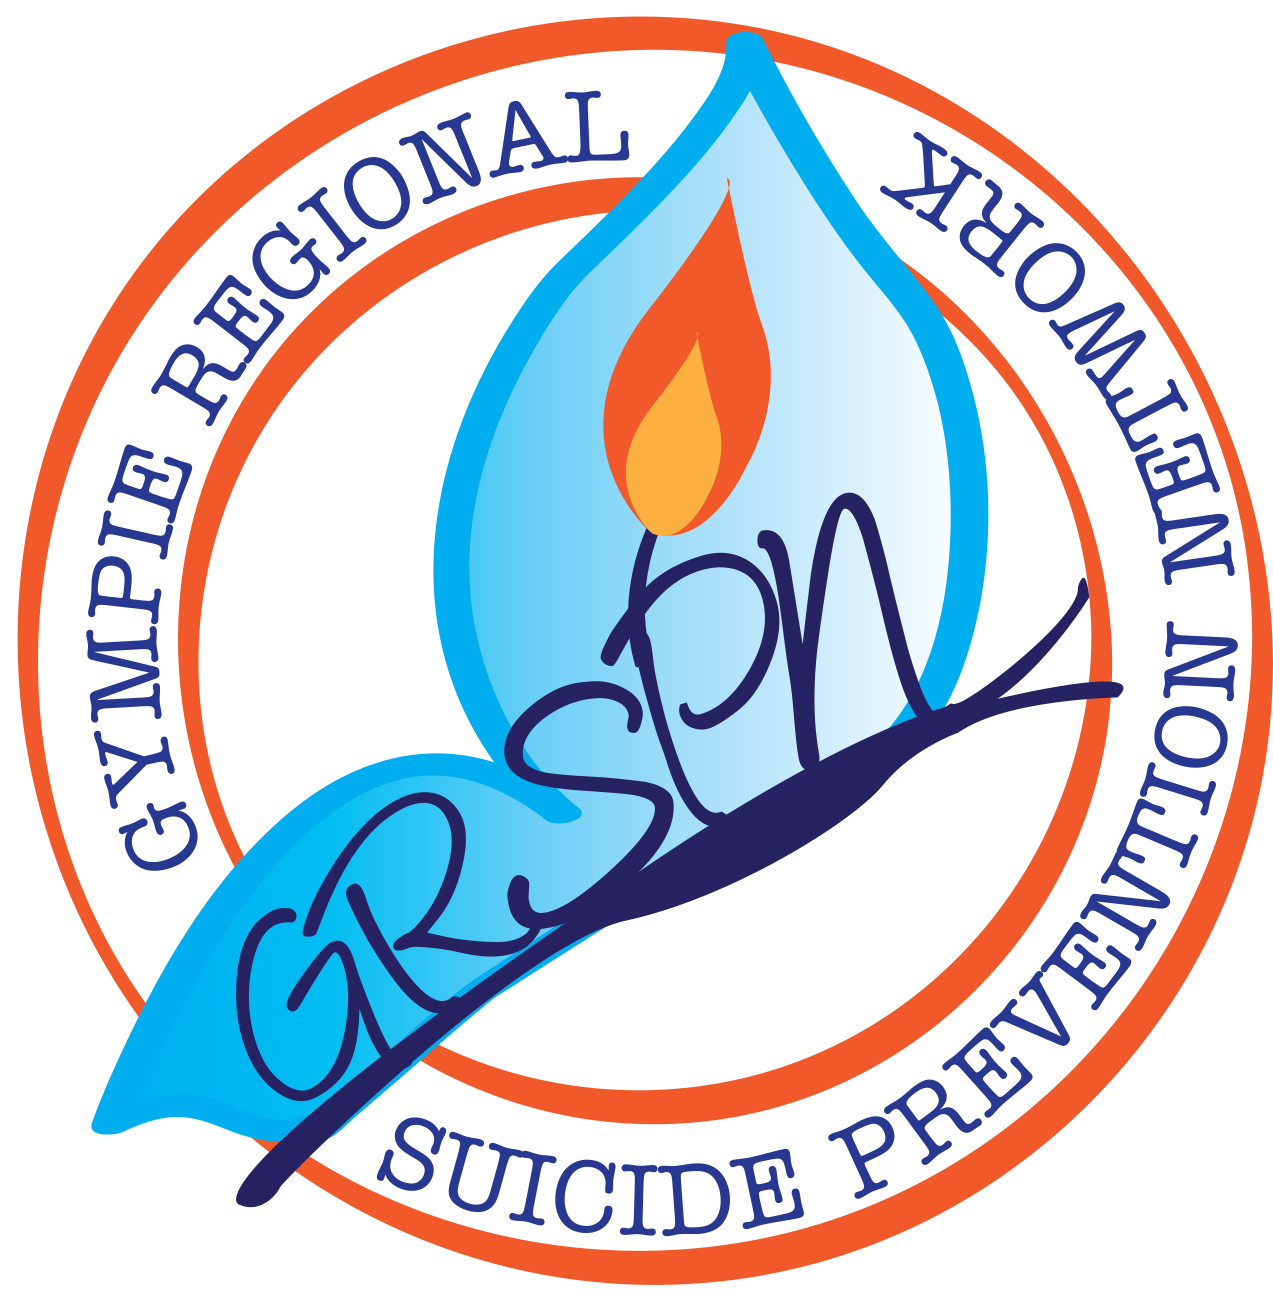 Gympie Regional Suicide Prevention Network logo